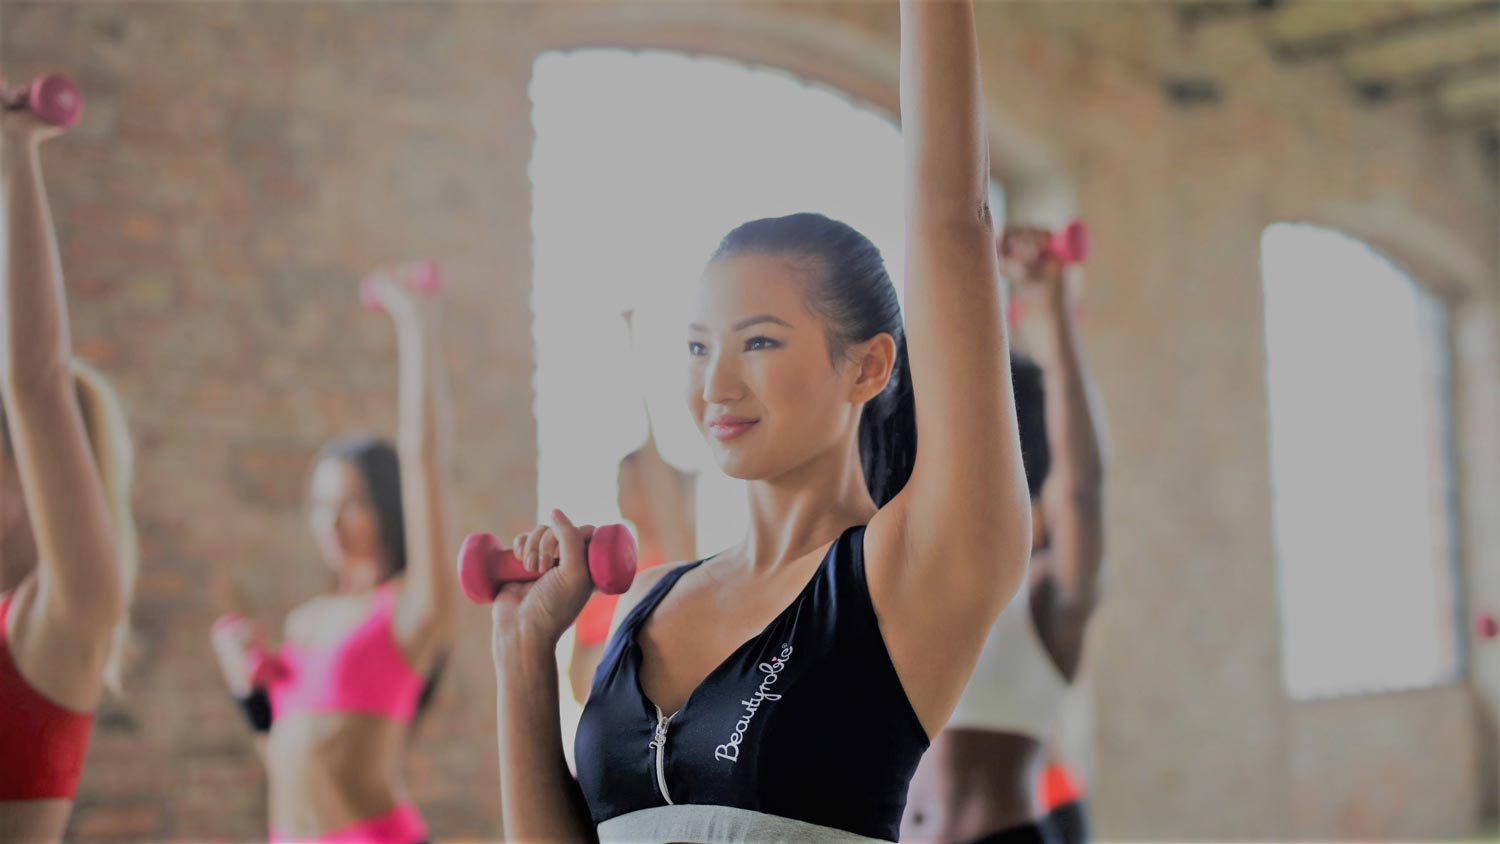 woman-exercising-with-weights